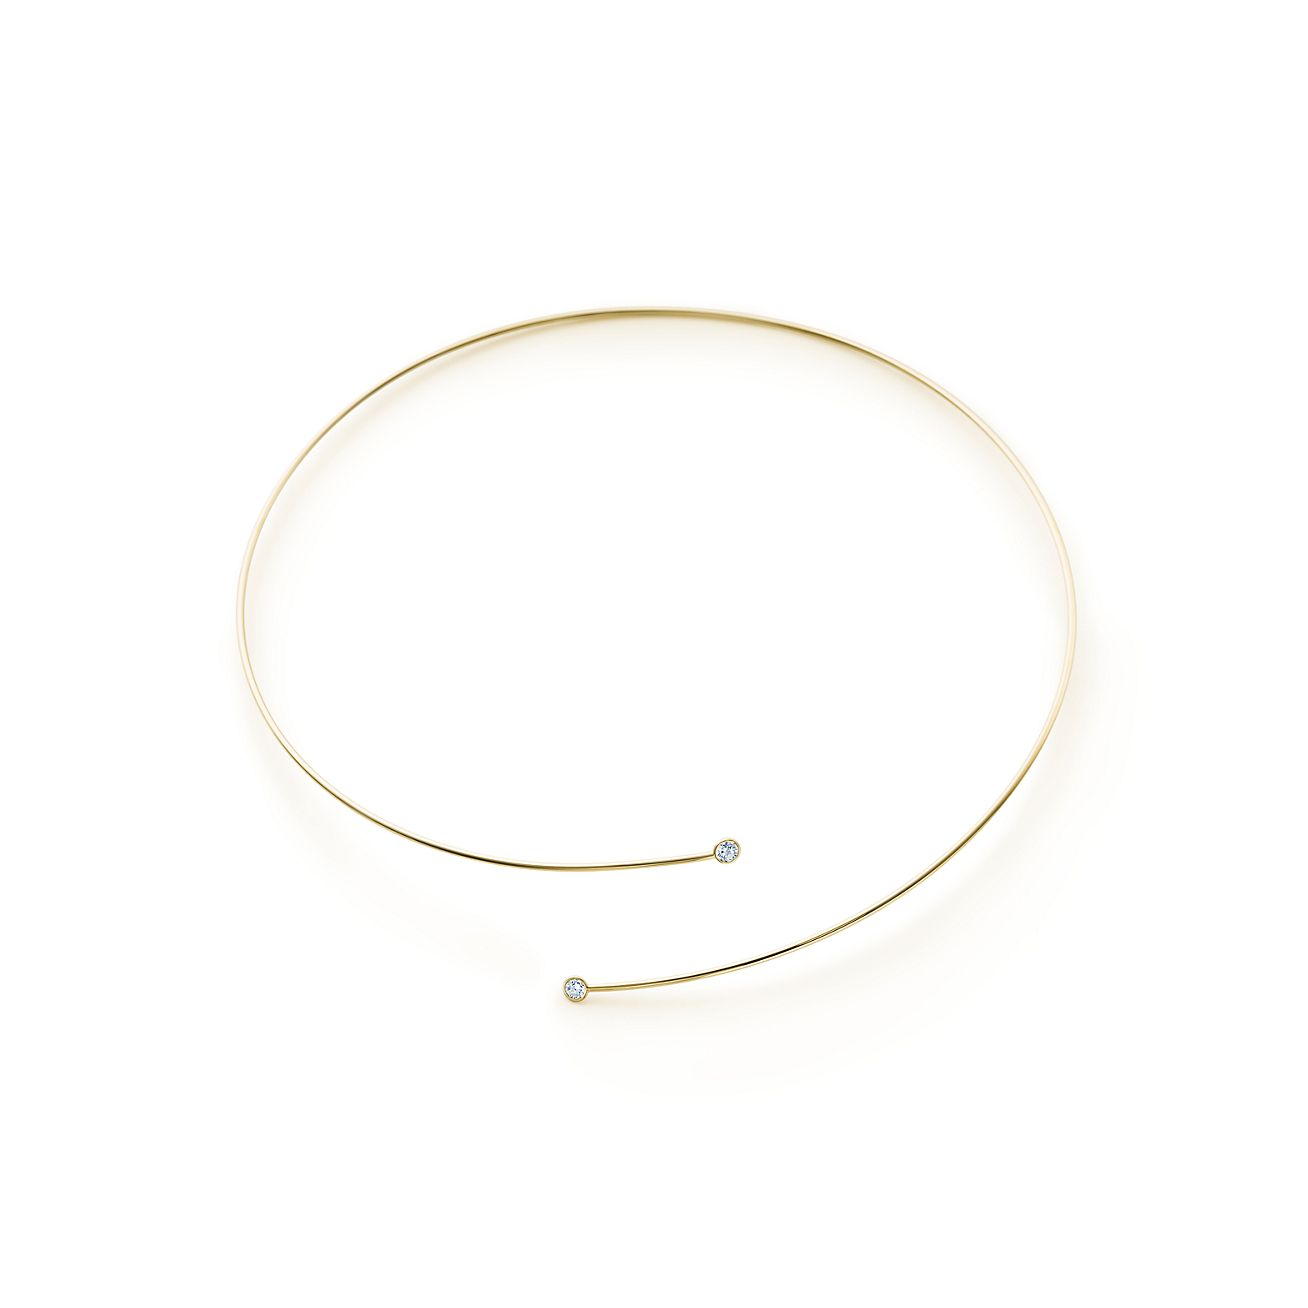 pearl black by sharon me and herrick llc illuminated hoop hope gold products bf with necklace